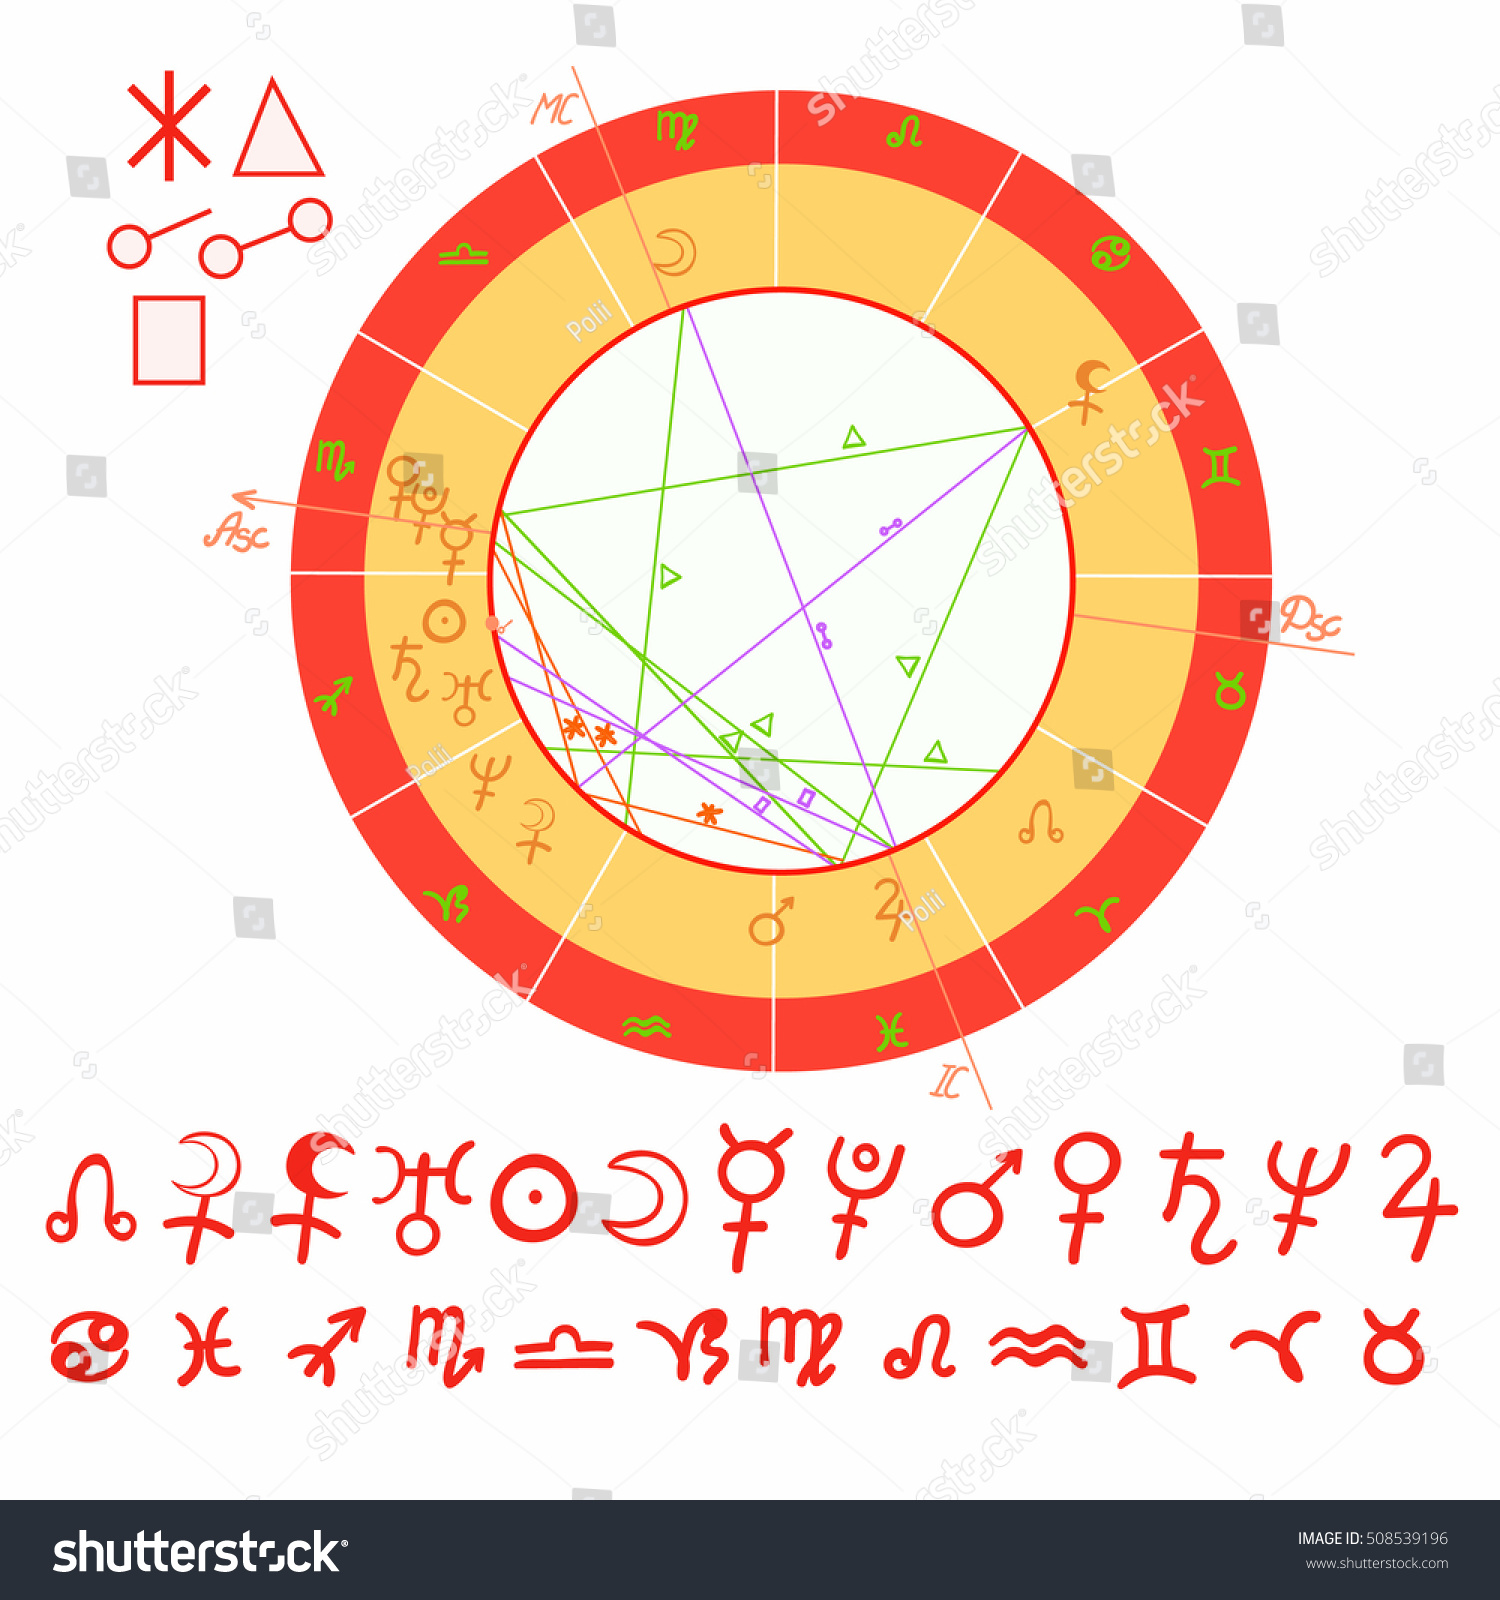 Horoscope birth chart calculator image collections free any horoscope birth chart calculator image collections free any western birth chart calculator image collections free any nvjuhfo Images